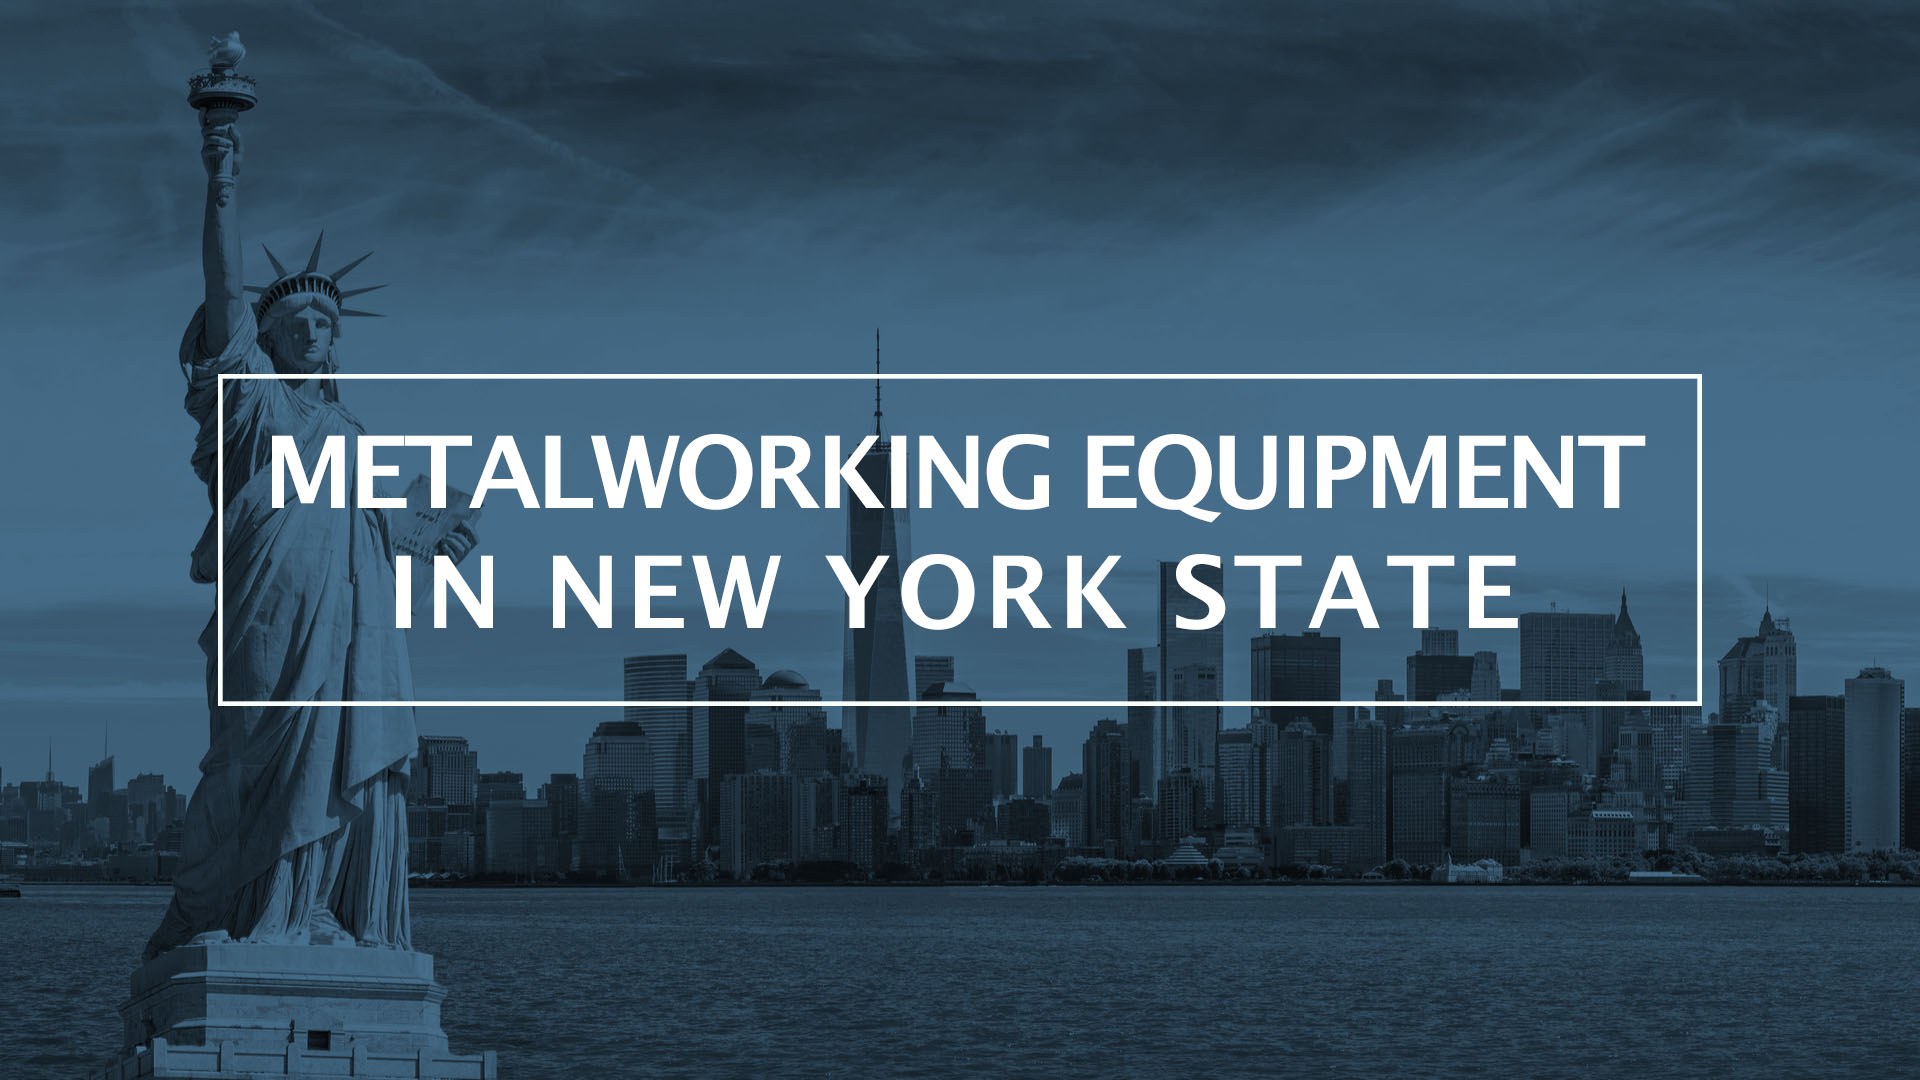 Guide to Selling Metalworking Equipment in New York